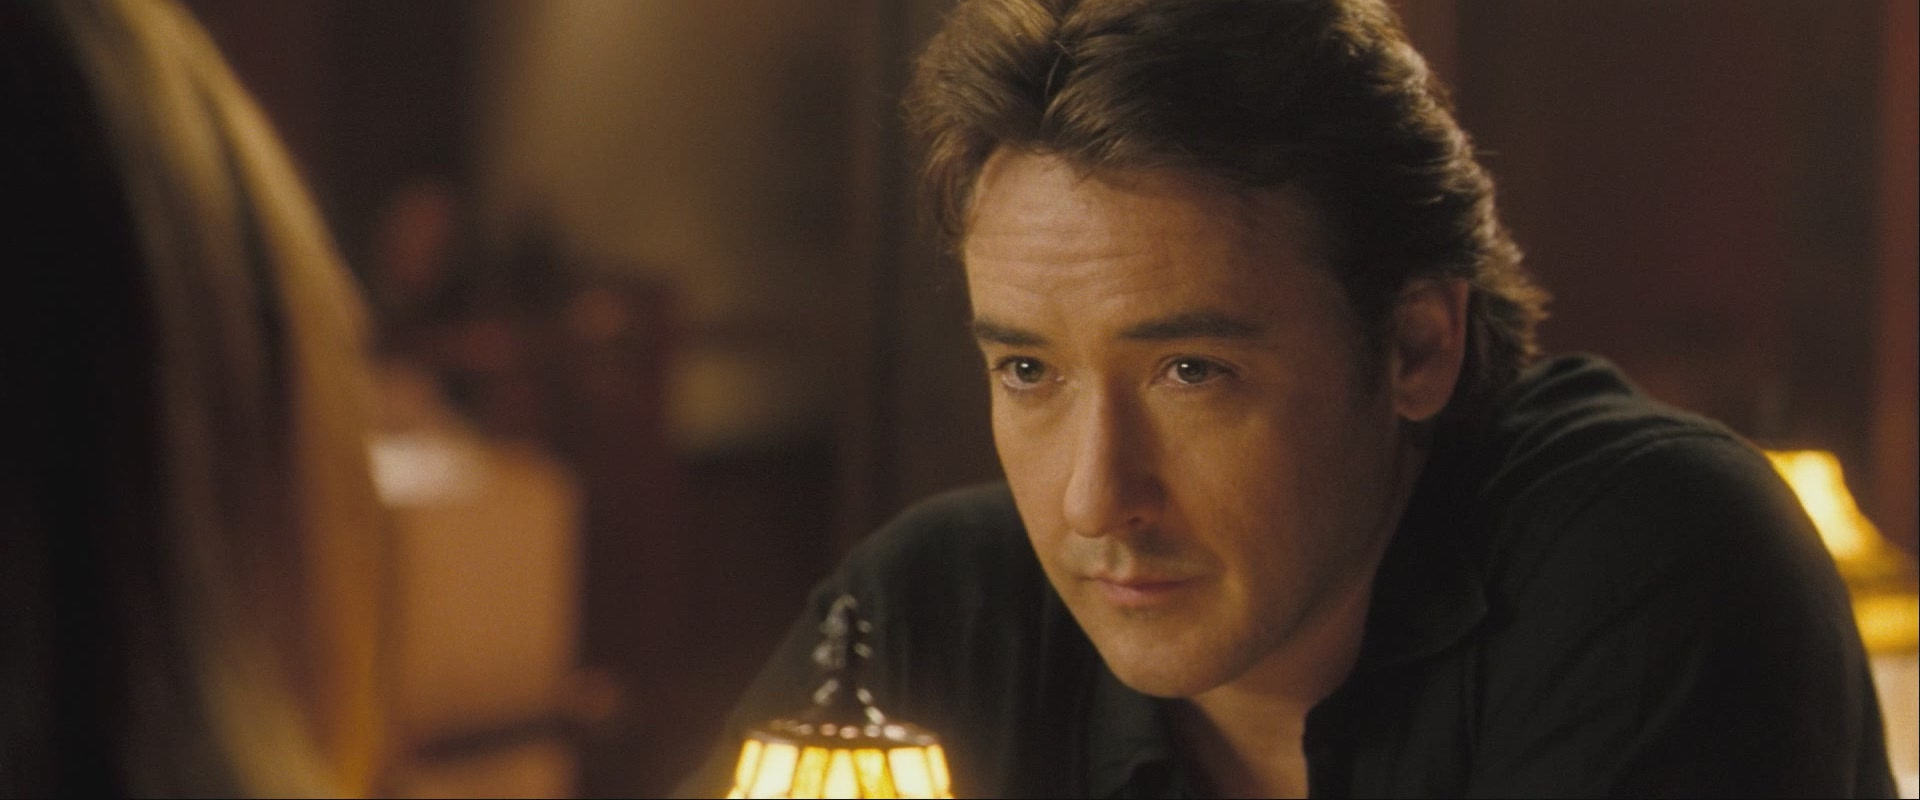 John Cusack images John Cusack in '1408' HD wallpaper and background photos